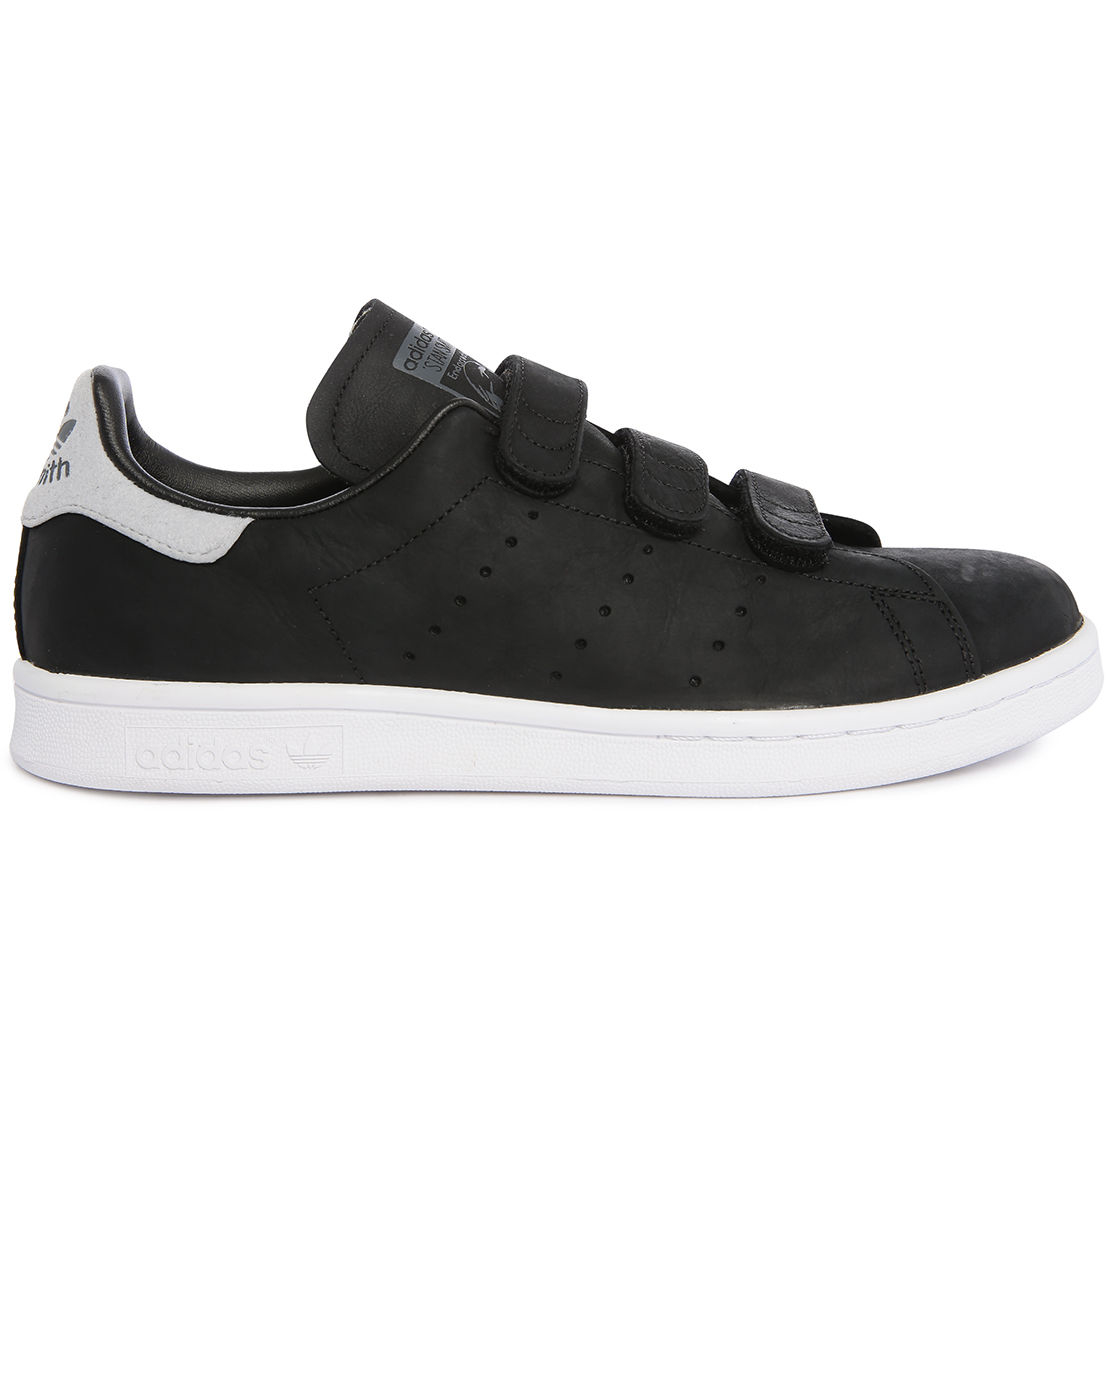 adidas originals stan smith black leather velcro sneakers in black for men lyst. Black Bedroom Furniture Sets. Home Design Ideas